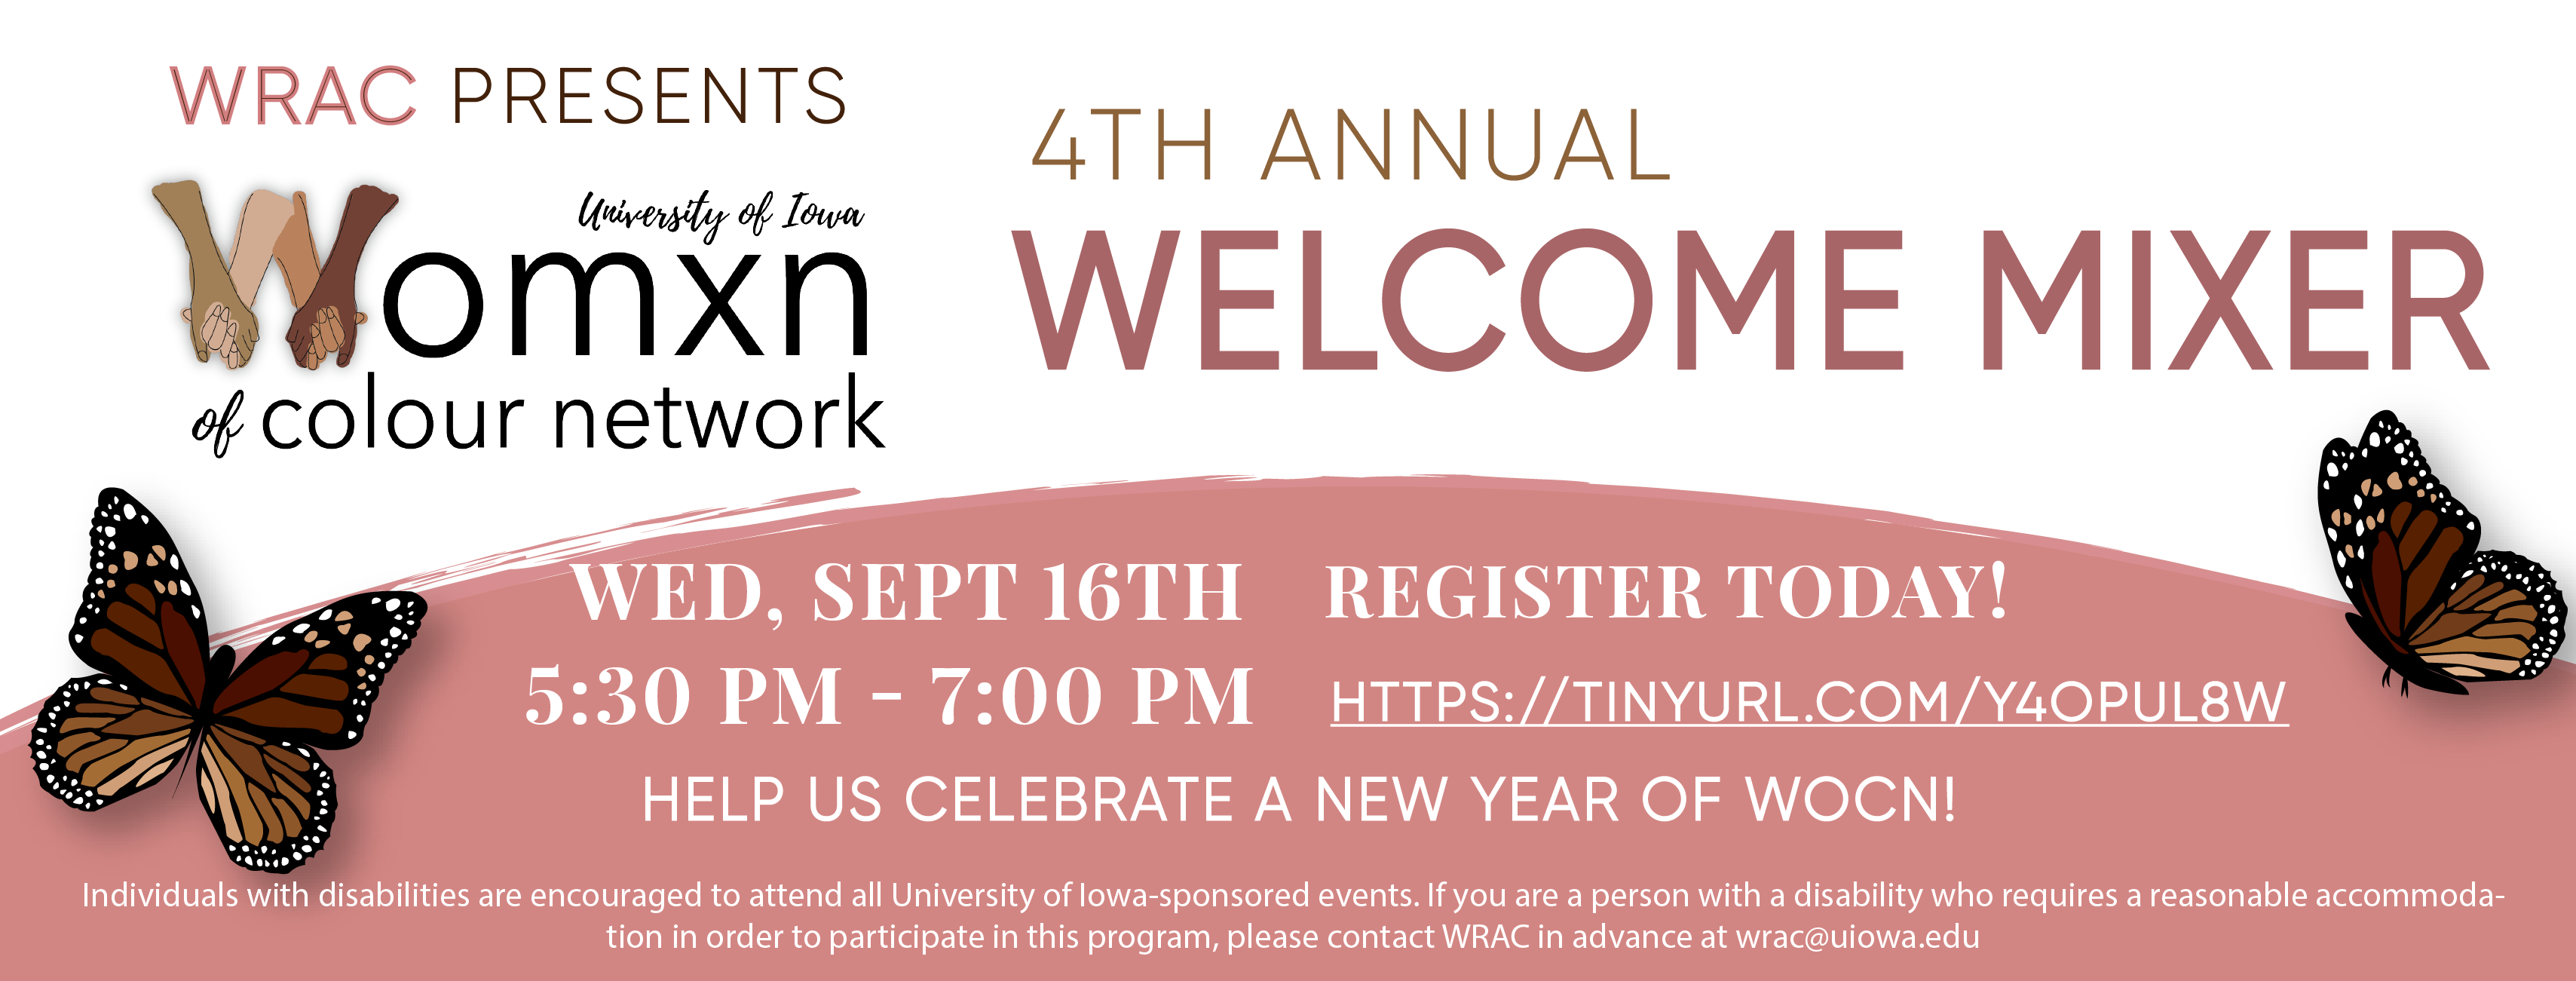 "Pink and white flyer with skin-toned butterfly. Text reads: ""WRAC presents: Womxn of colour network 4th annual welcome mixer. A virtual event. Wednesday, September 16th, 5:30-7PM. Register today: https://tinyurl.com/y4opul8w. Help us celebrate!"